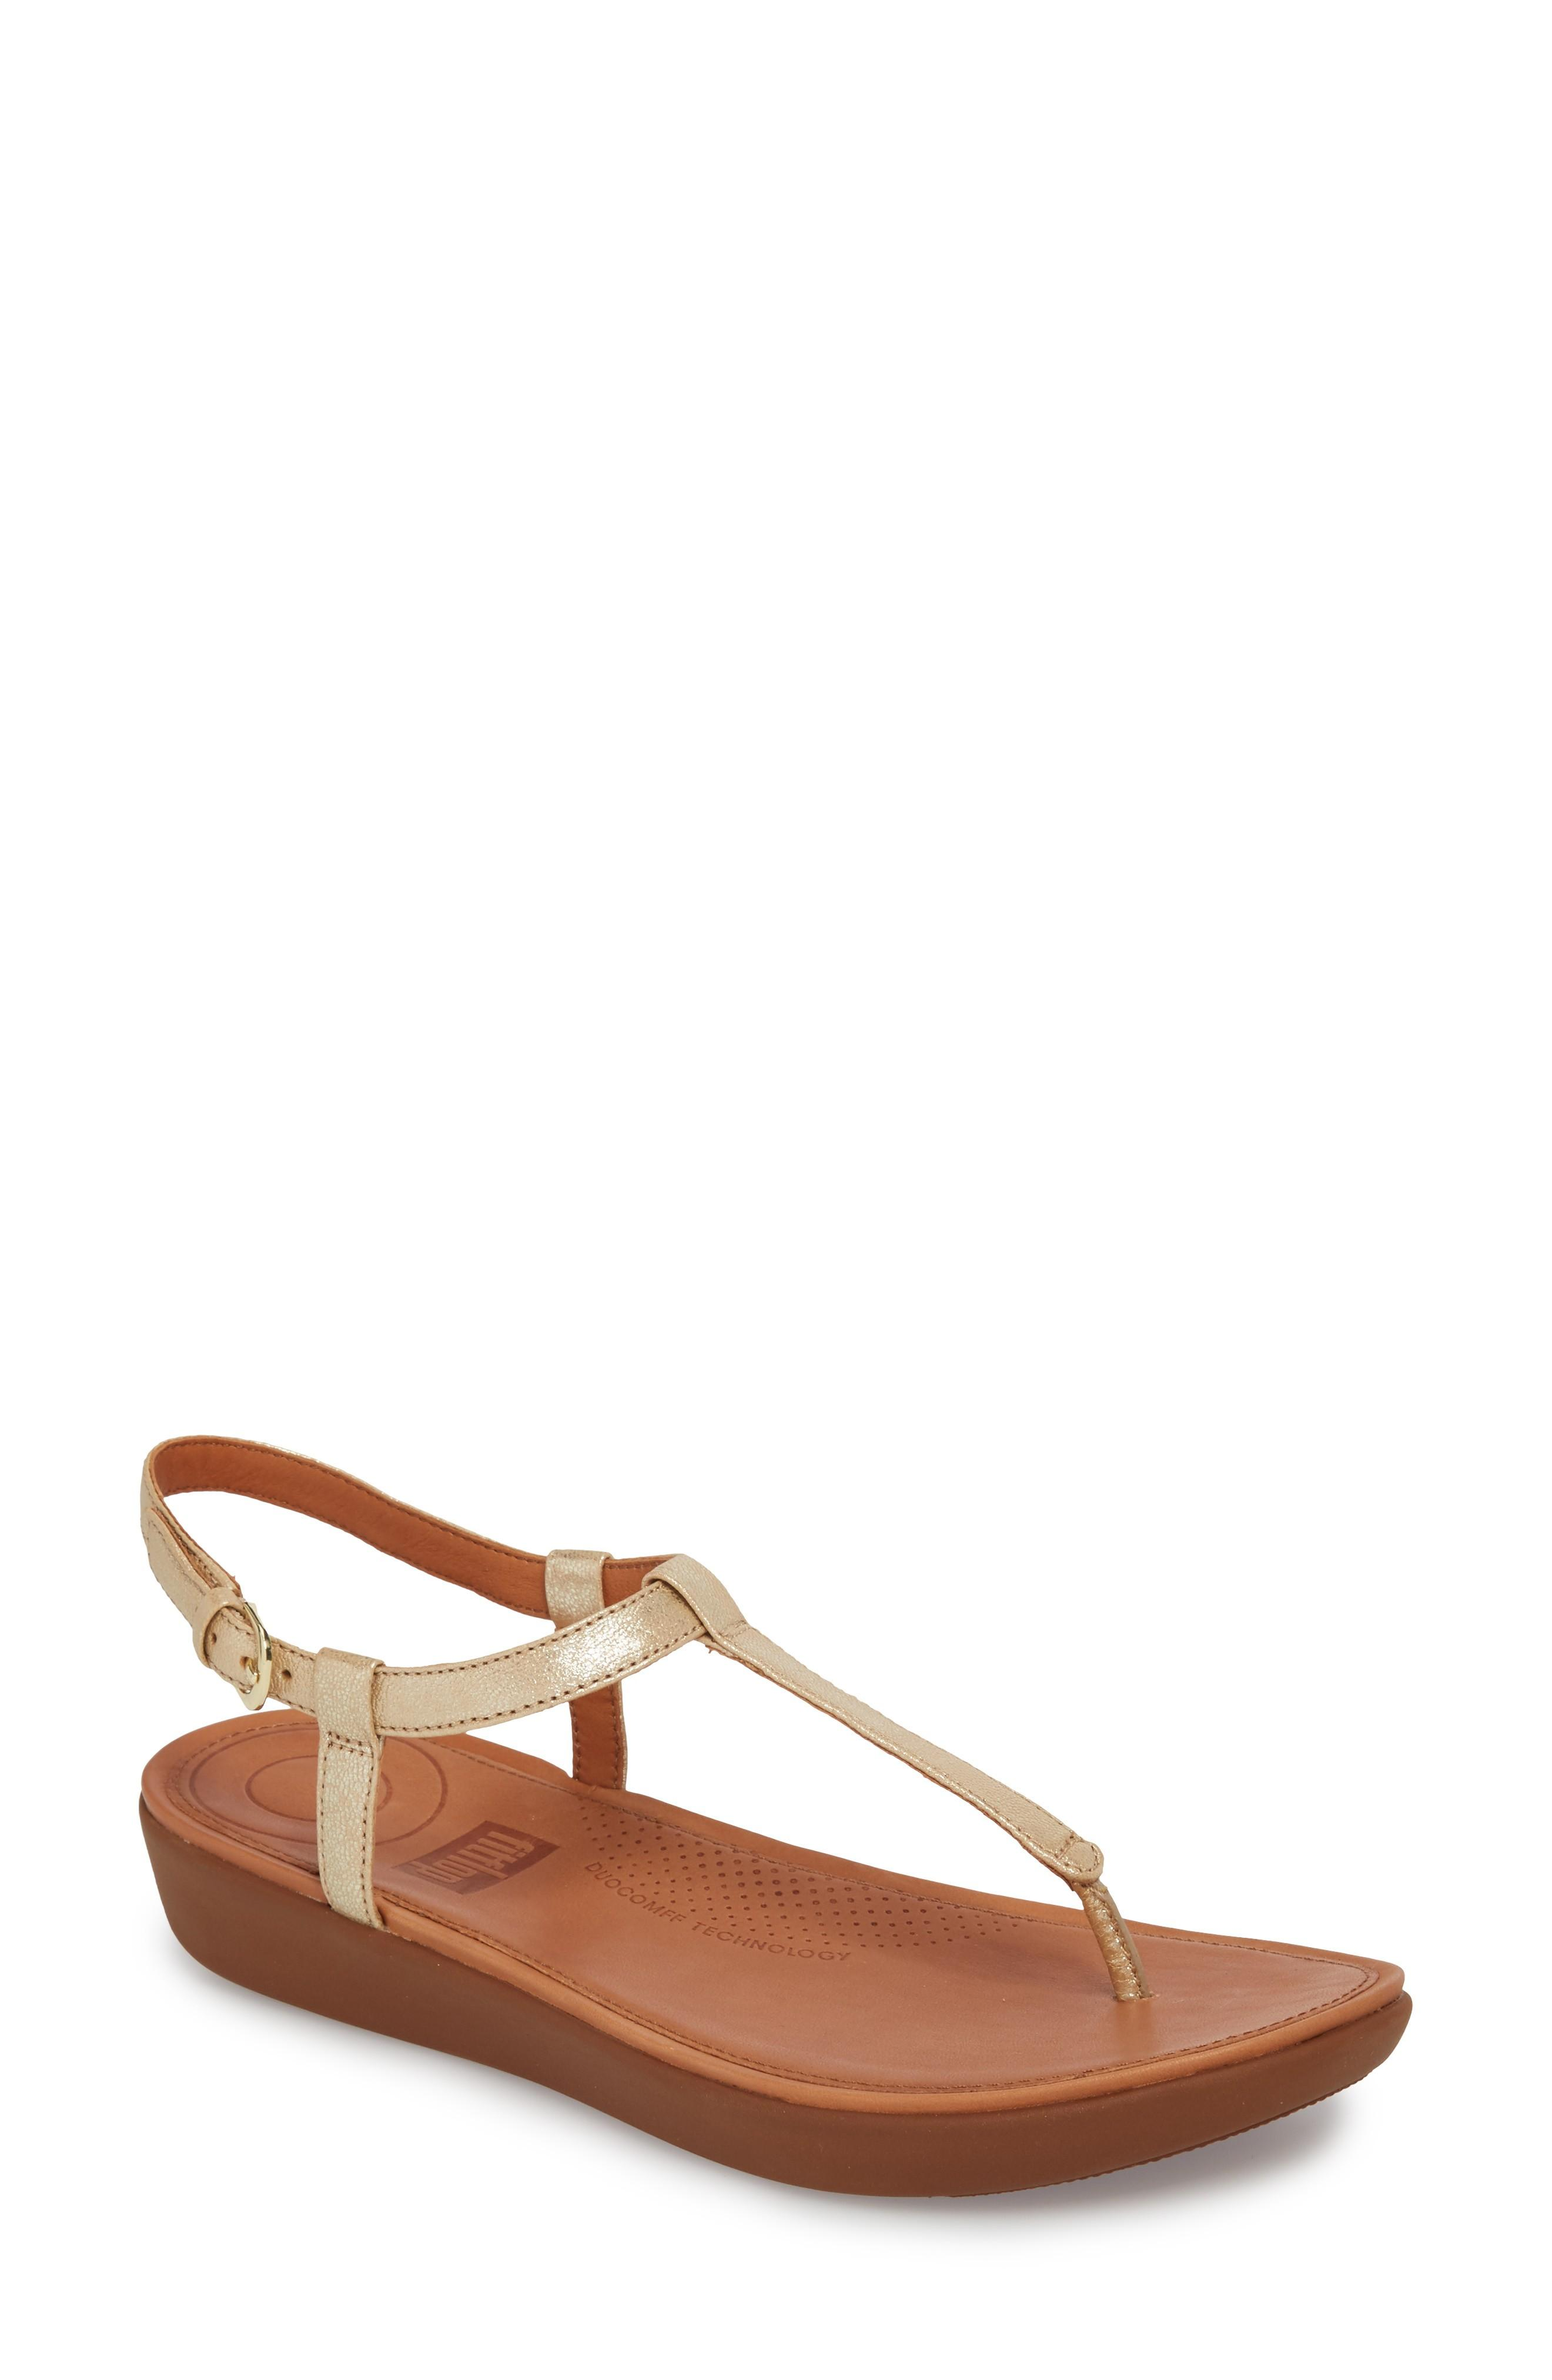 Fitflop Tia Thong Sandal In Pale Gold Leather